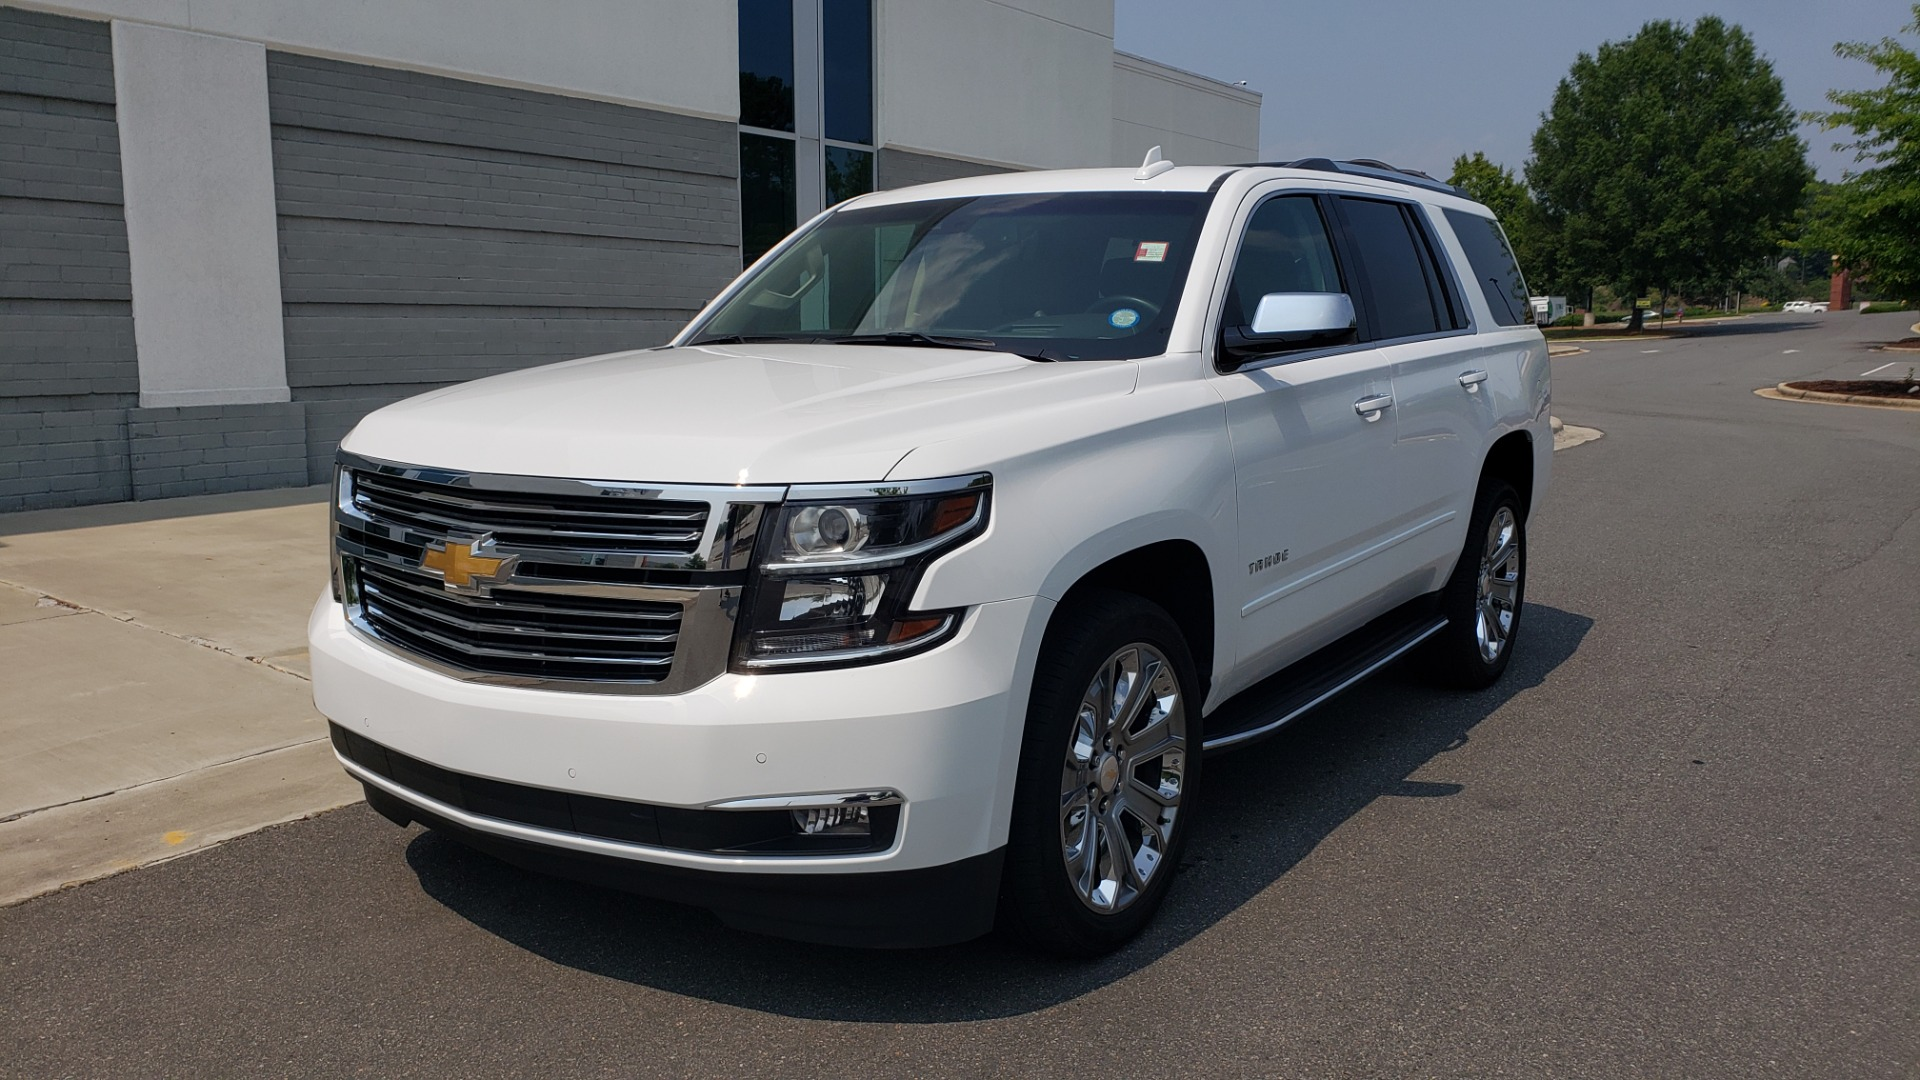 Used 2018 Chevrolet TAHOE PREMIER 4WD / NAV / SUNROOF / BOSE / 3-ROW / HUD / REARVIEW for sale $63,995 at Formula Imports in Charlotte NC 28227 3